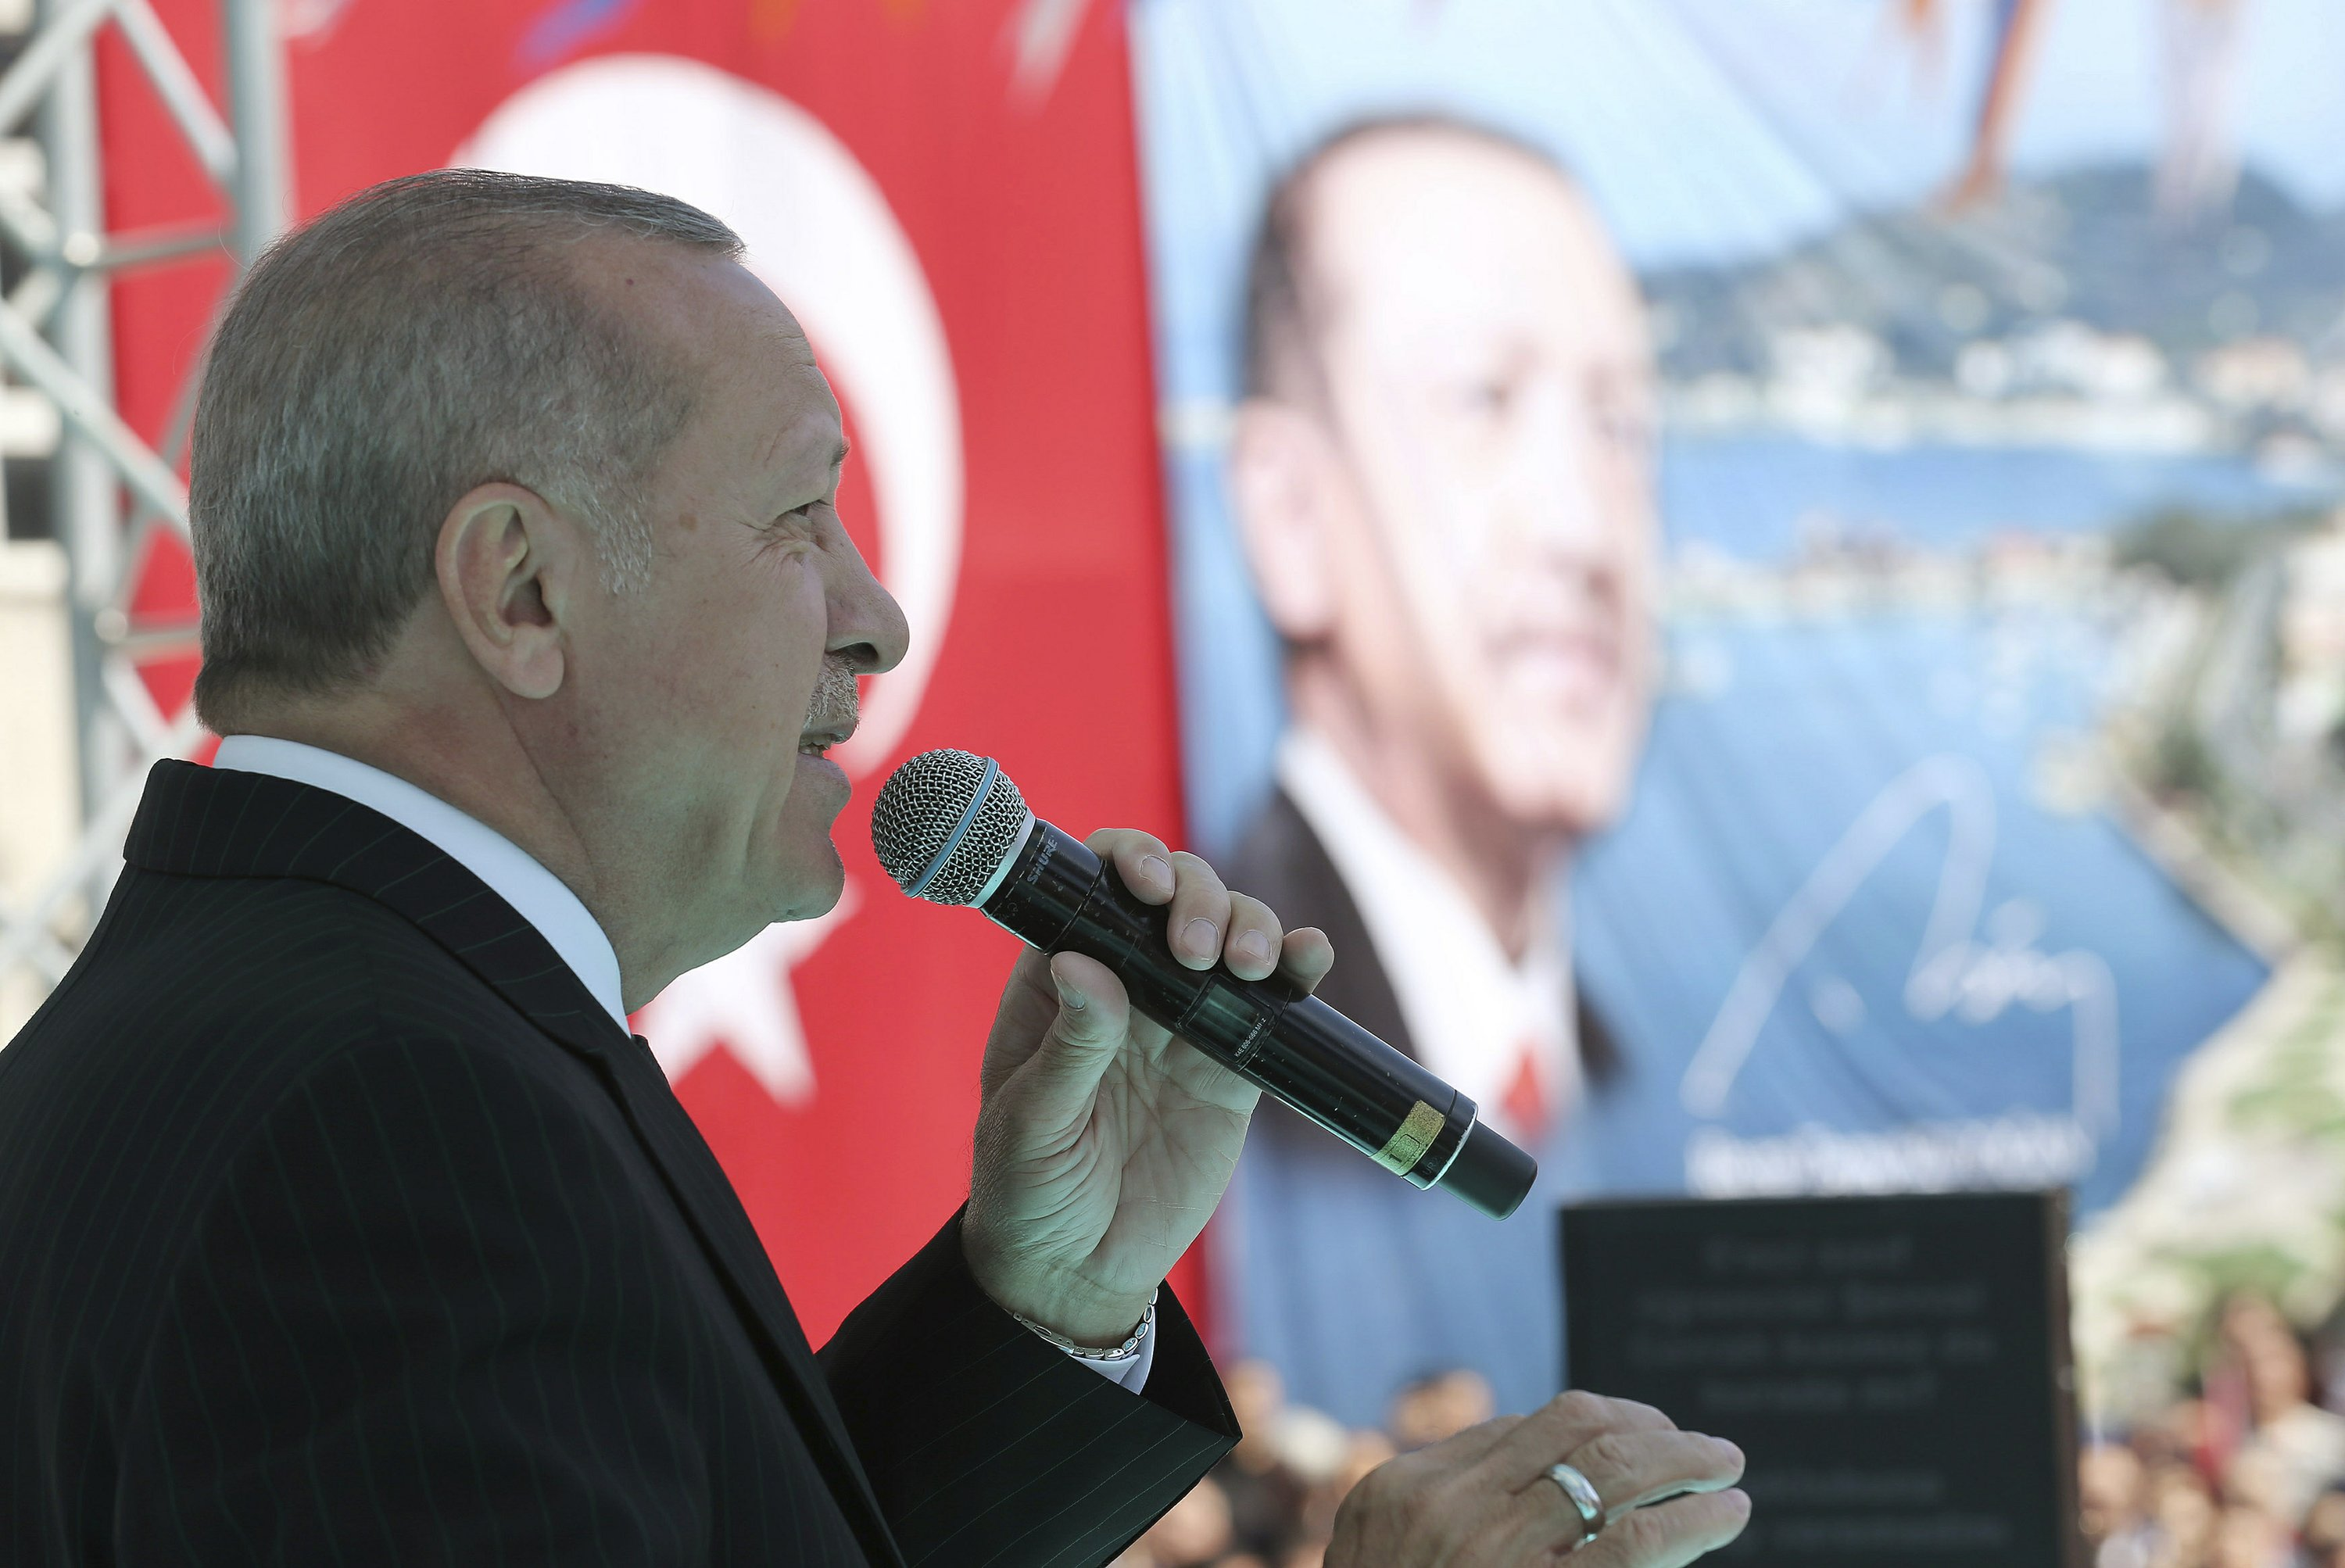 Erdogan again airs attack video at rally despite criticism